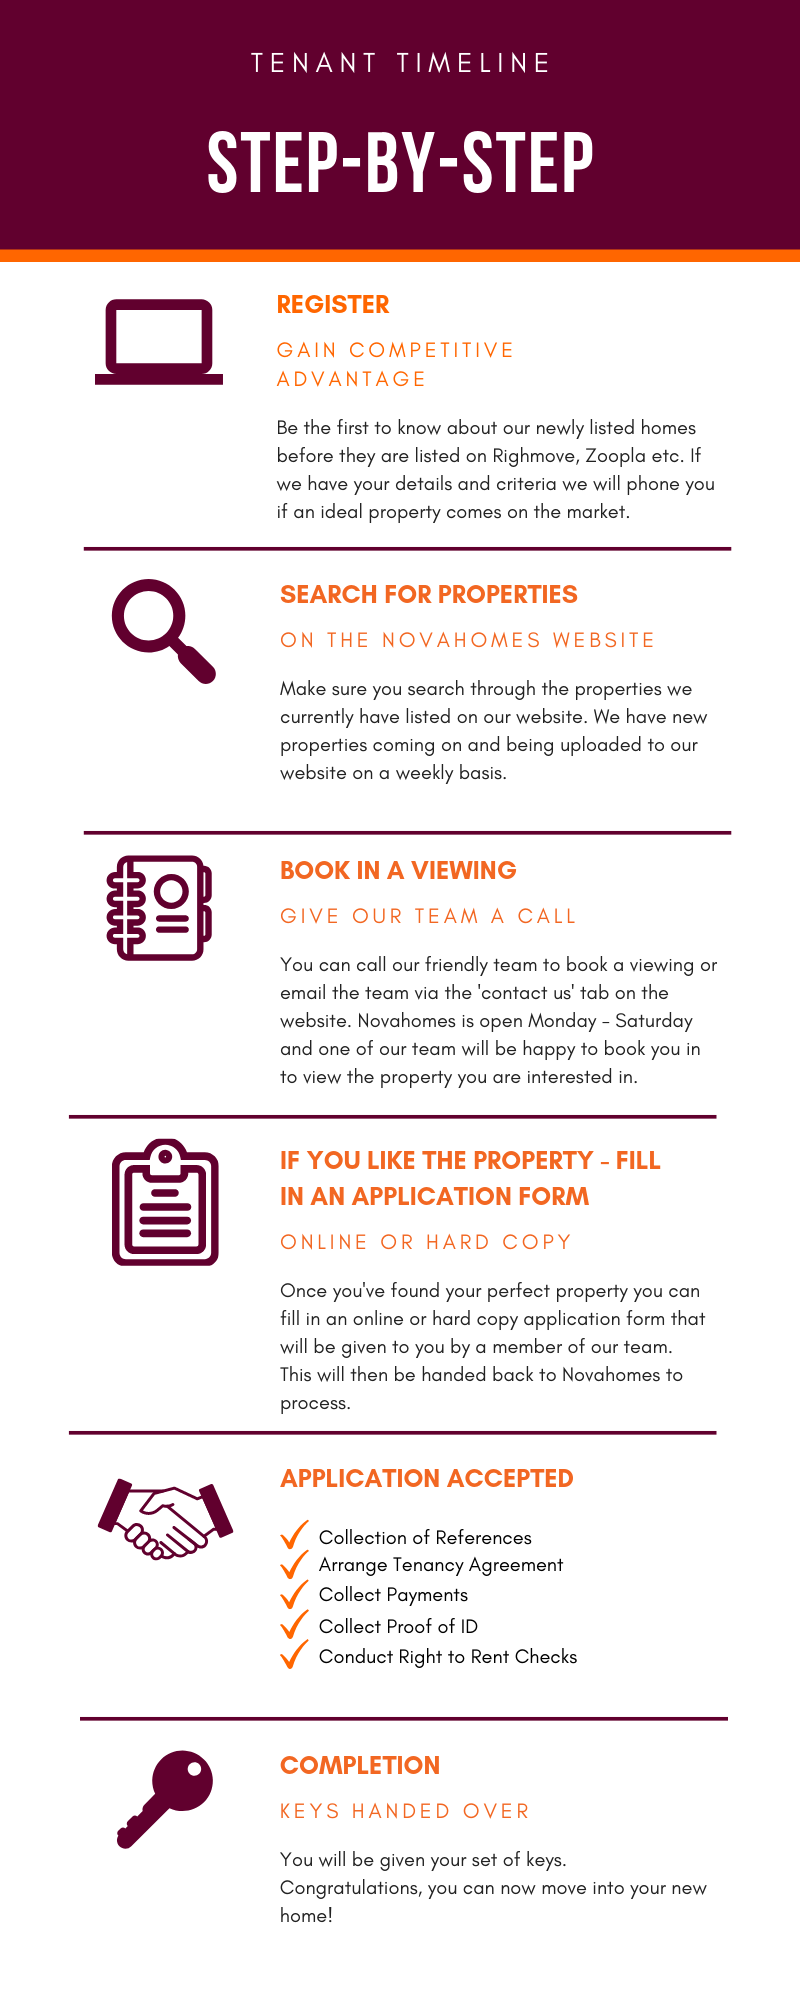 Step by step Renting Guide